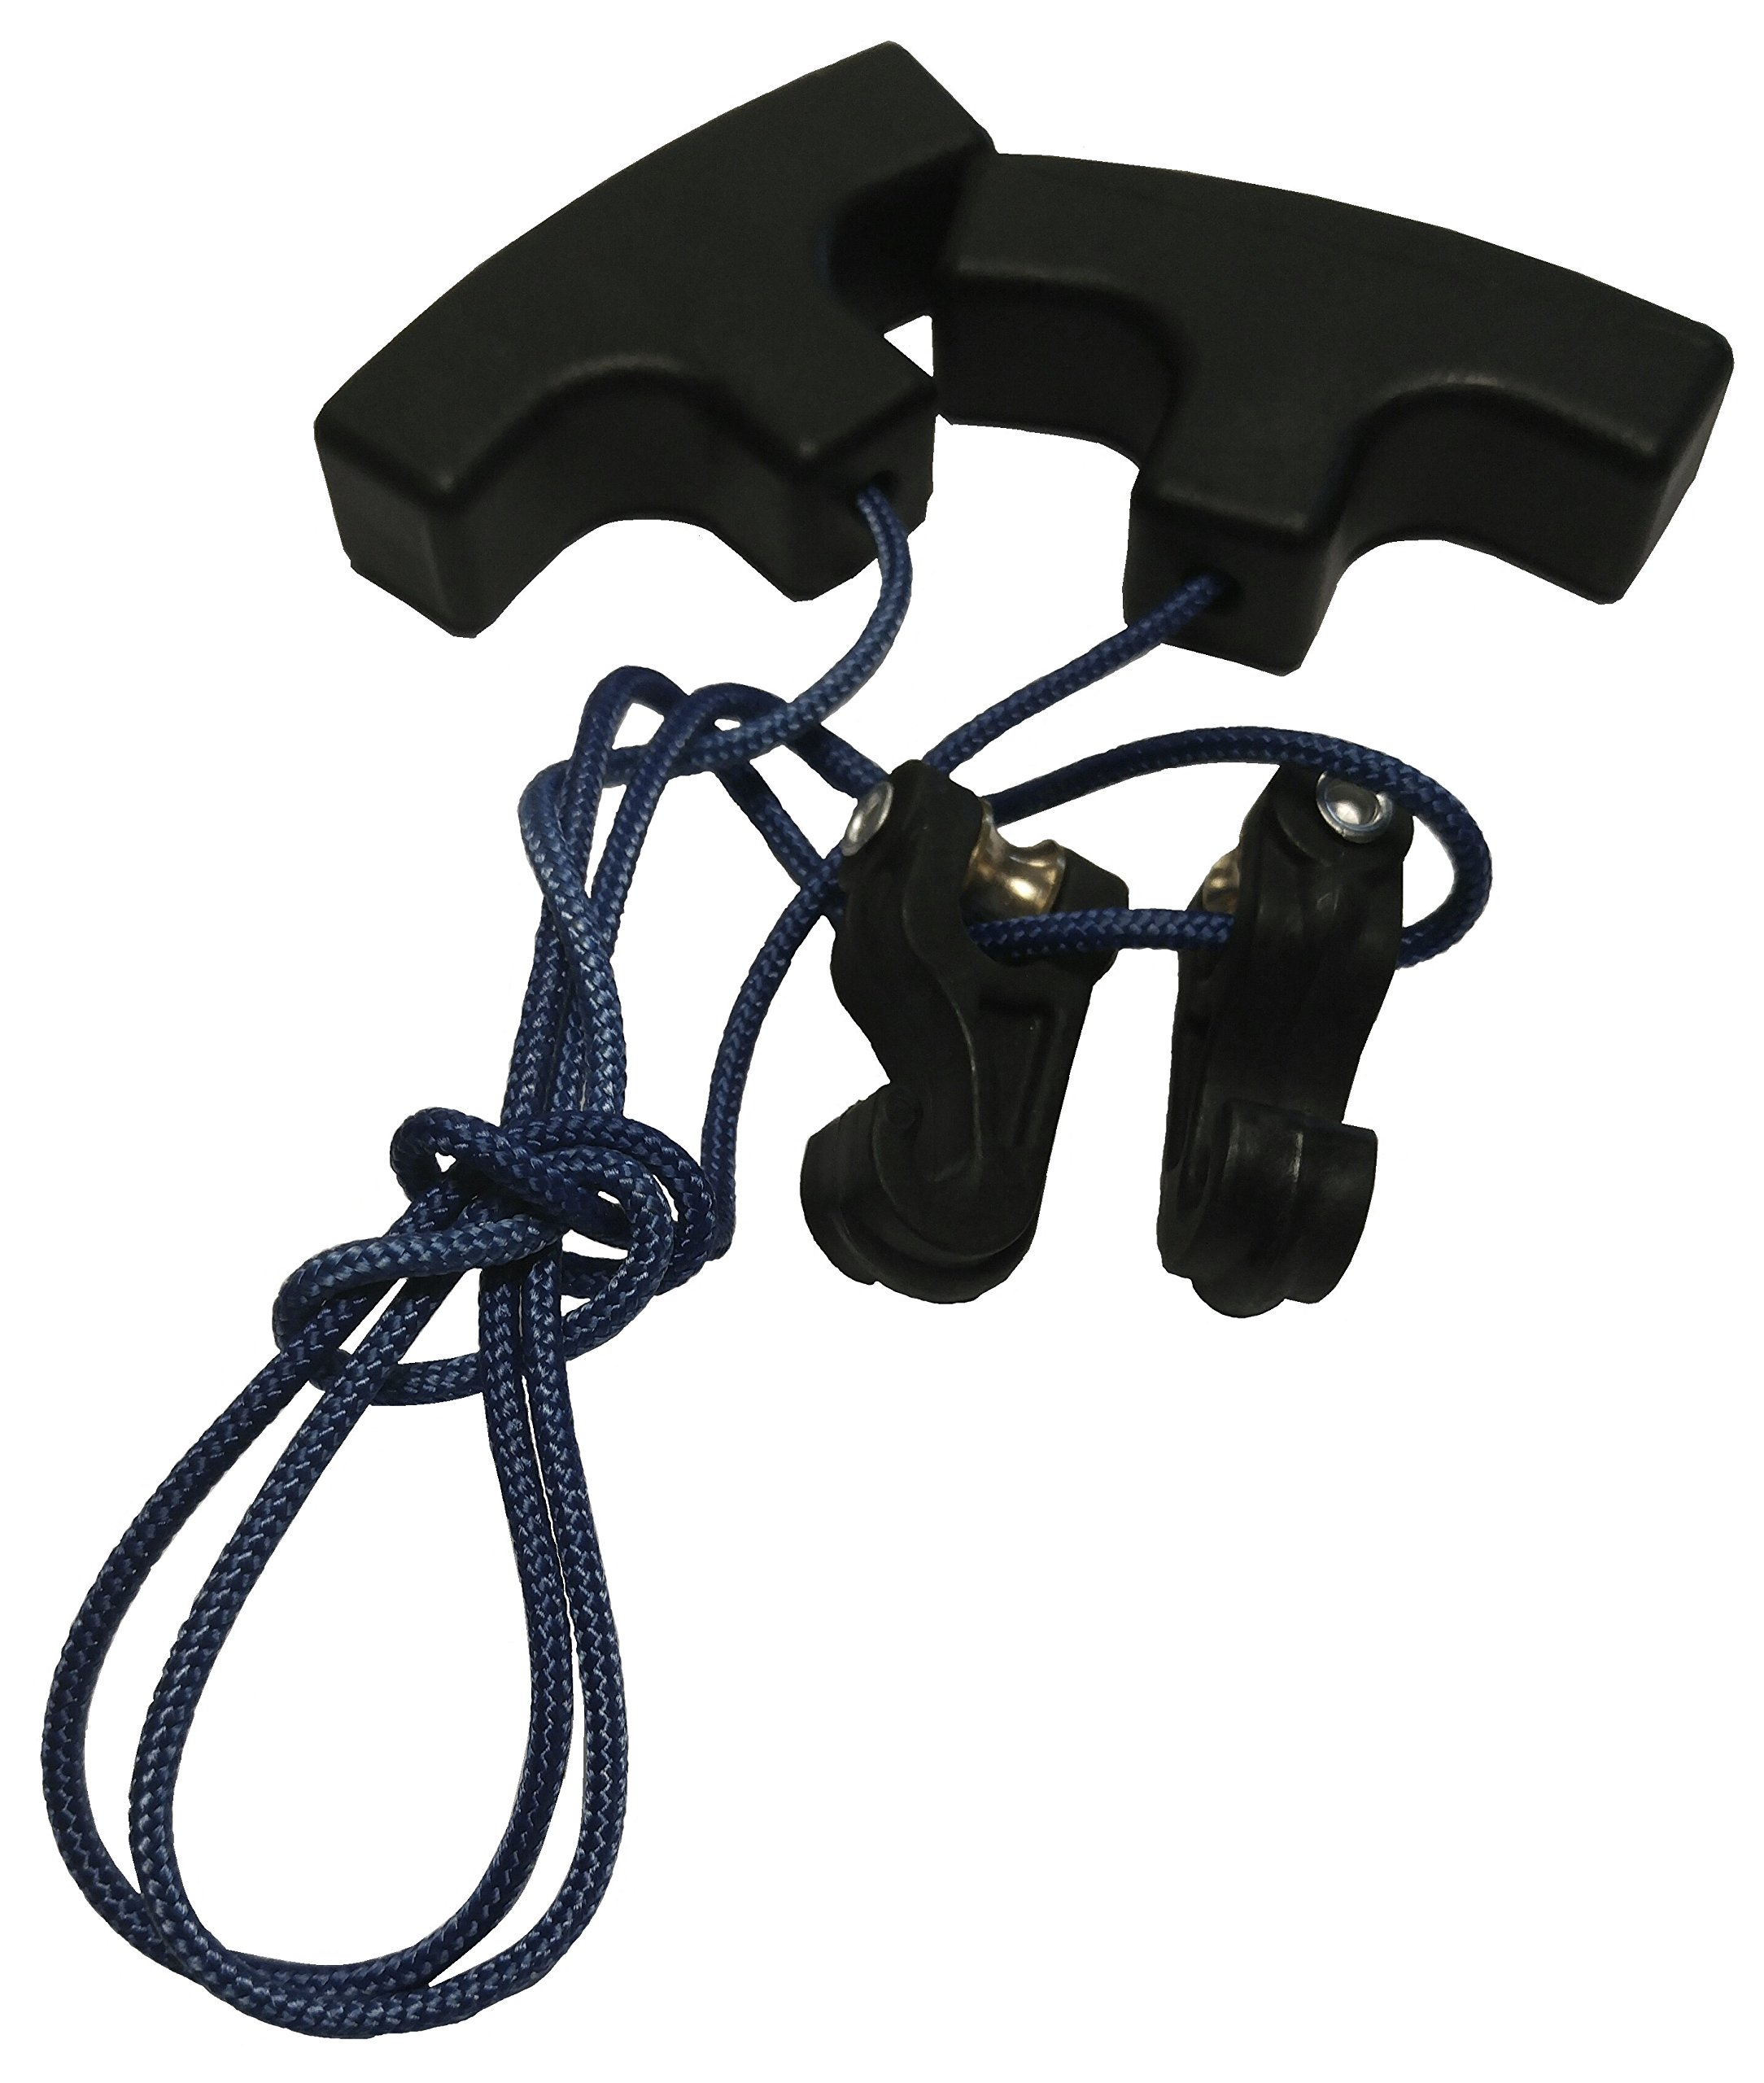 Bowtactix Universal Double Handle Crossbow Rope Cocking Device (Crossbow Cocker)